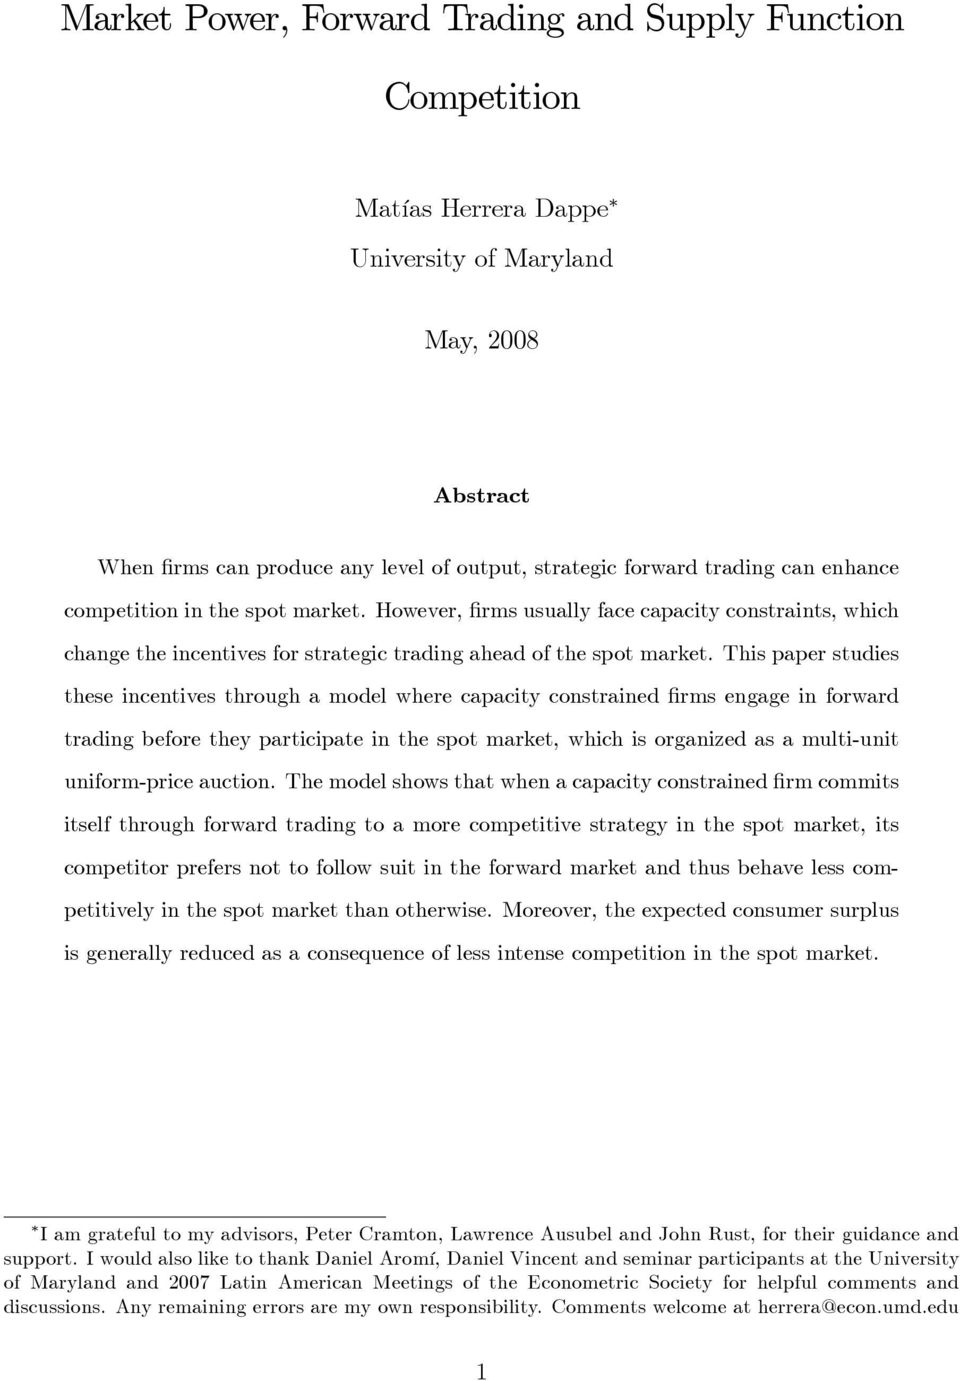 This paper studies these incentives through a model where capacity constrained rms engage in forward trading before they participate in the spot market, which is organized as a multi-unit